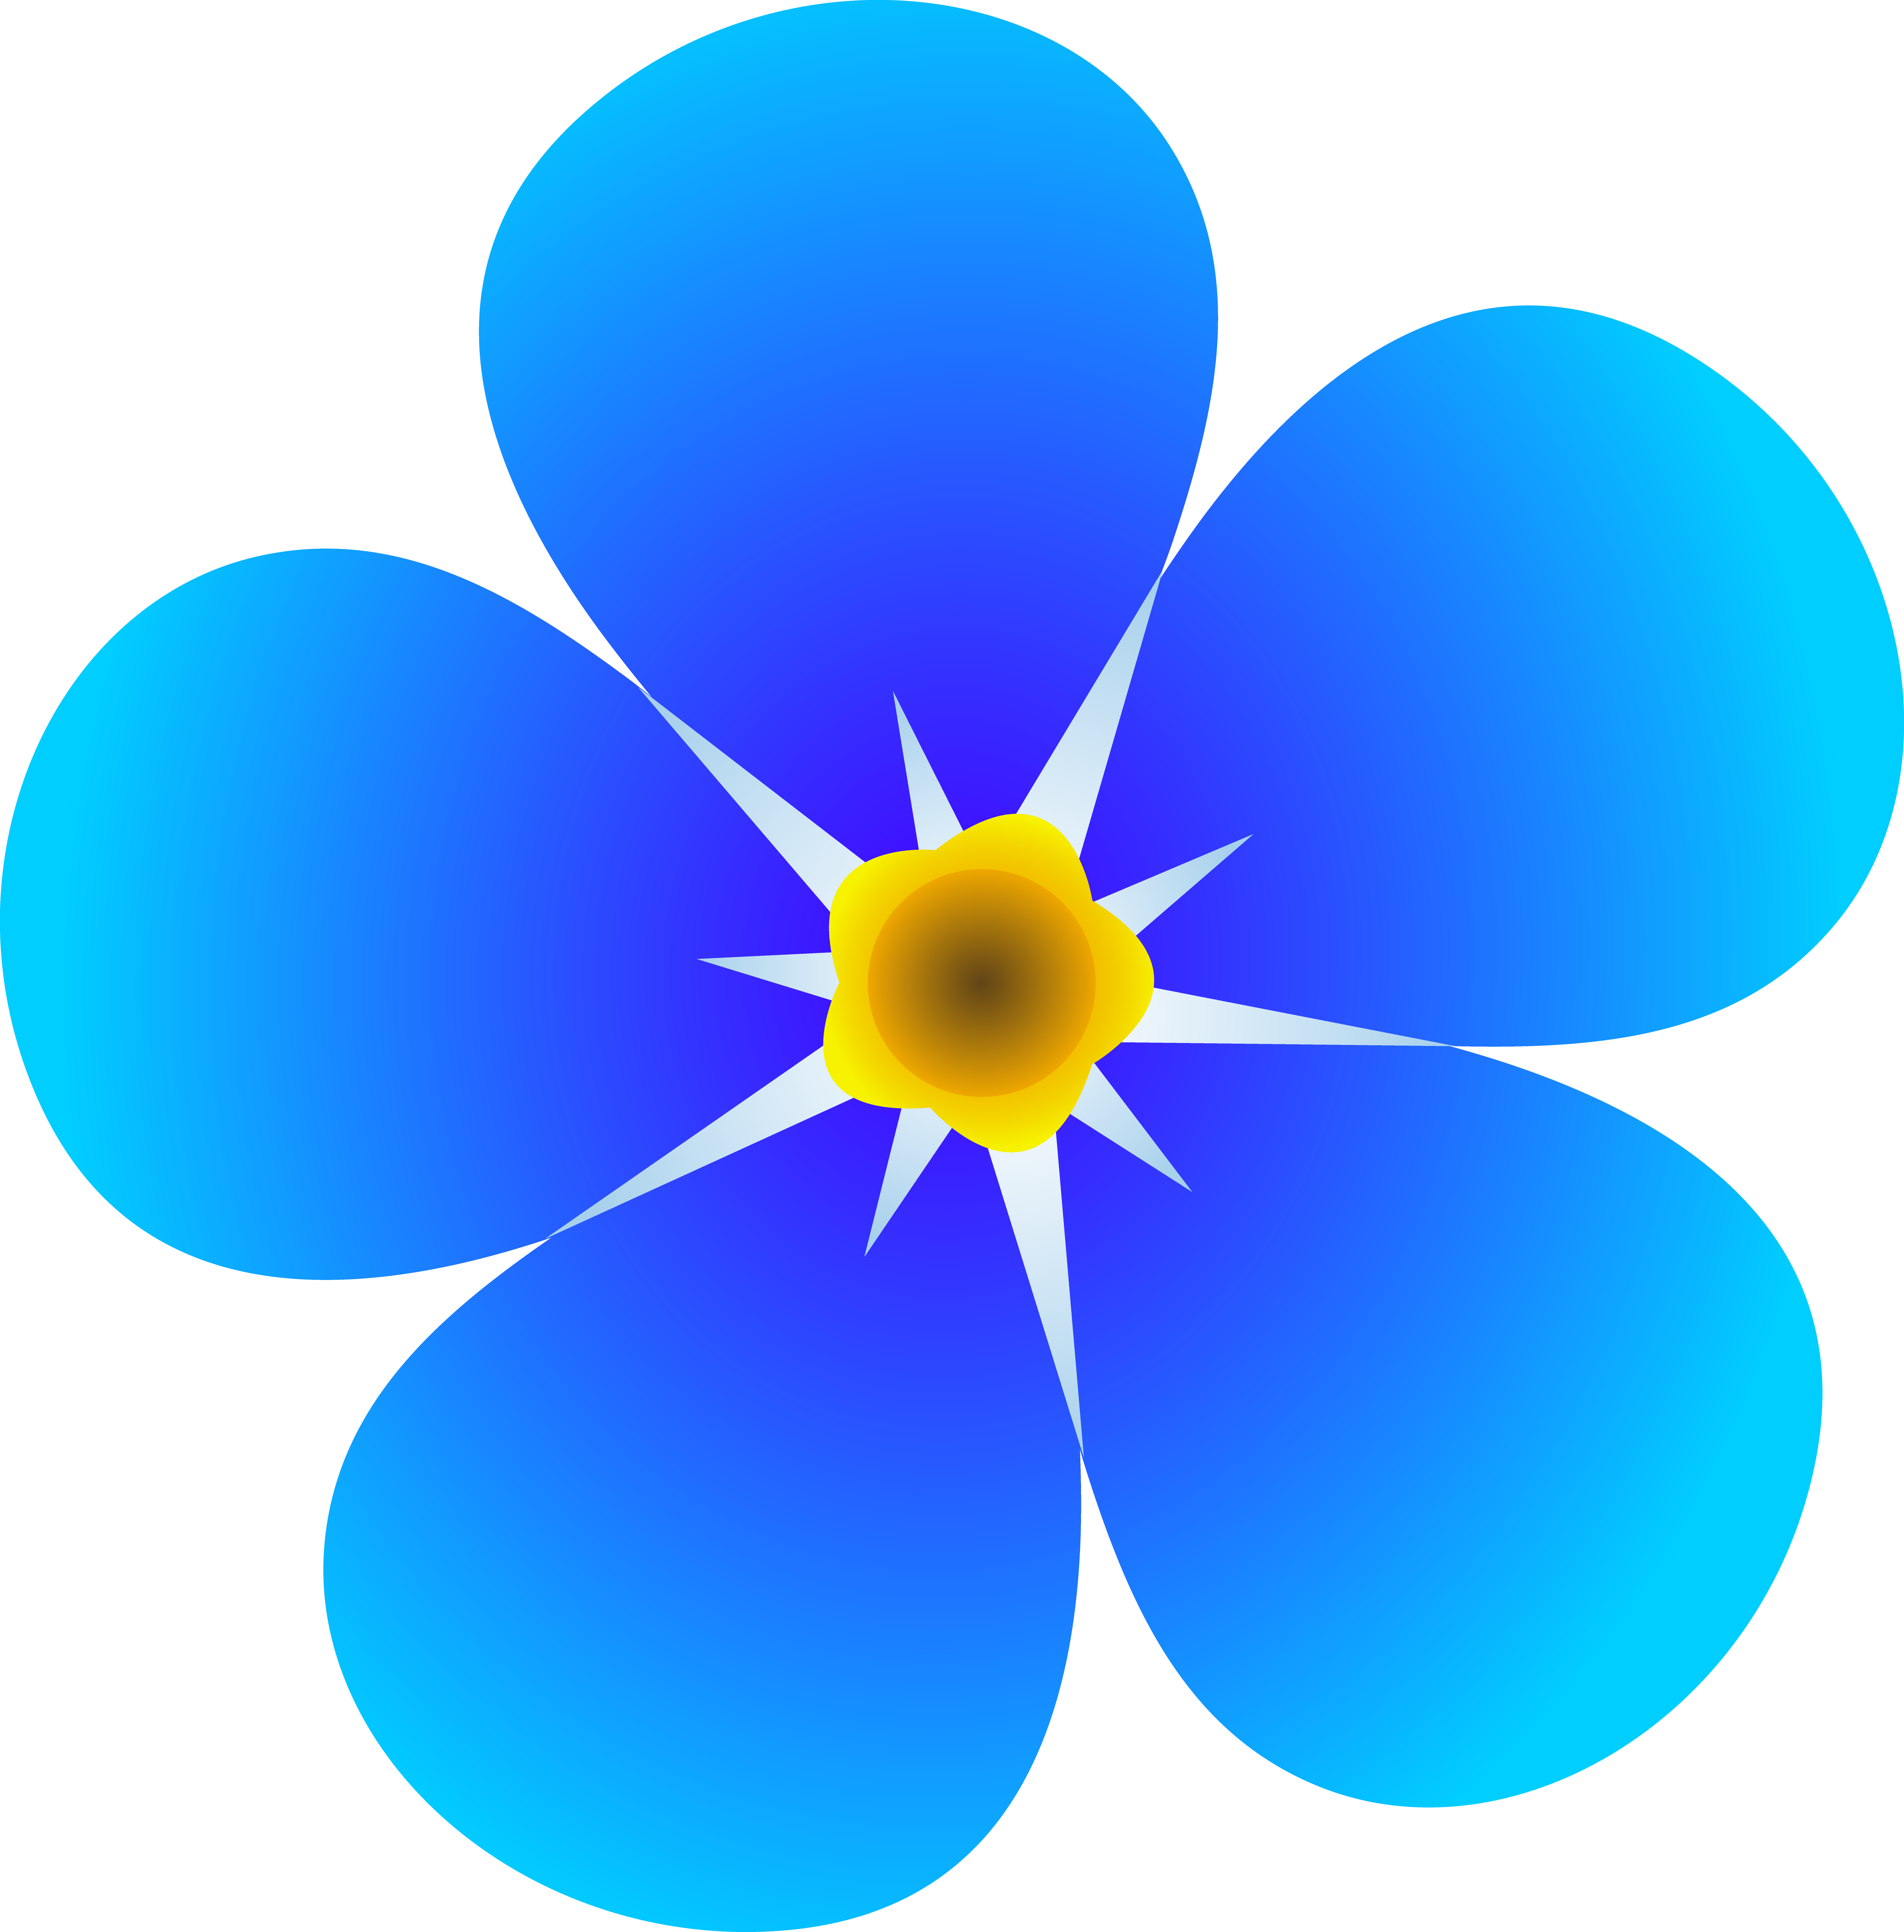 Flower clip art png. Free cartoon flowers cliparts